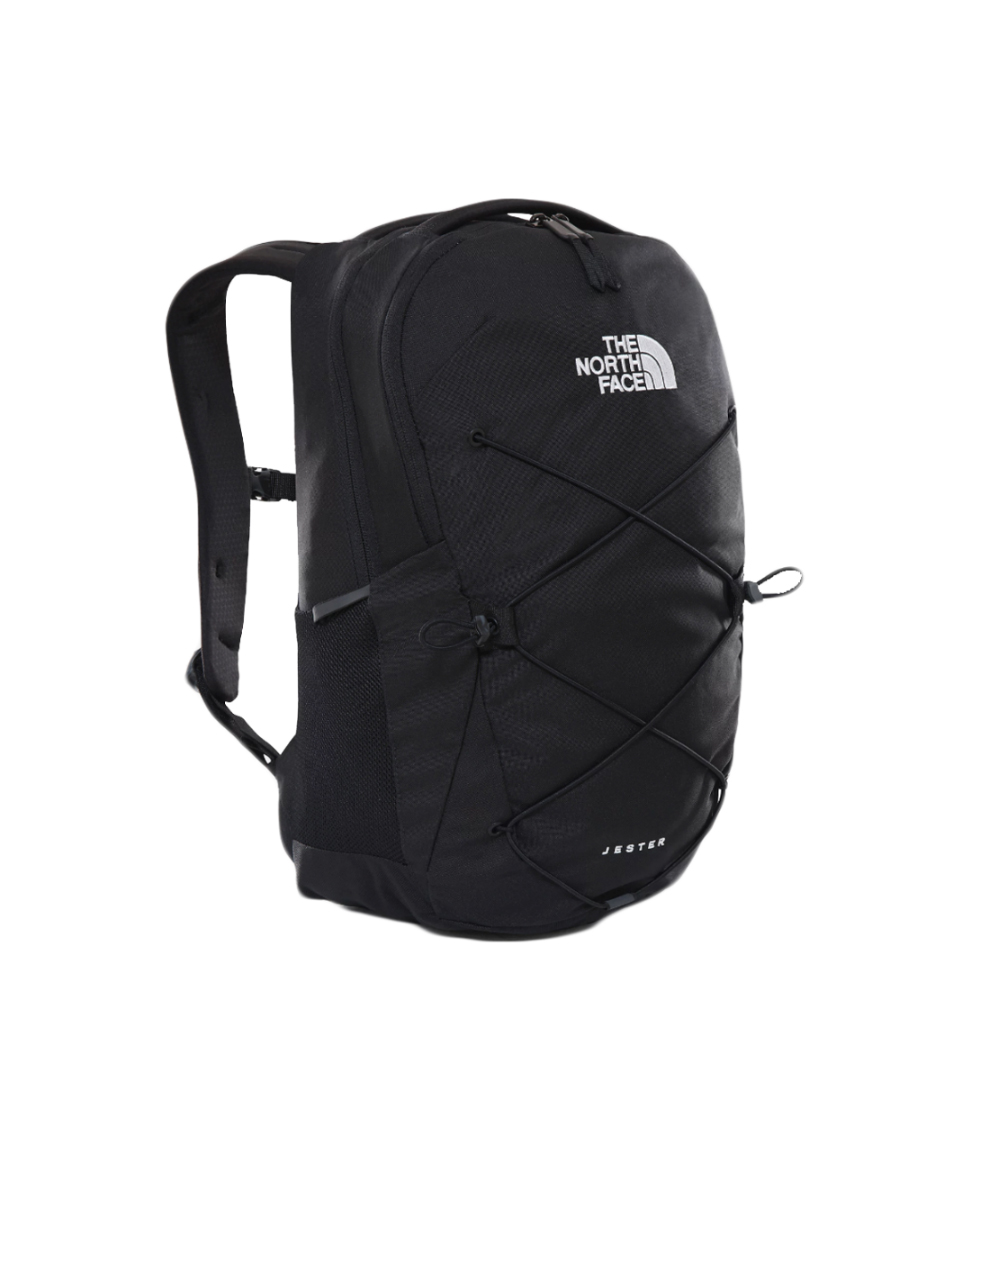 The North Face Jester 28L (NF0A3VXFJK31) Black